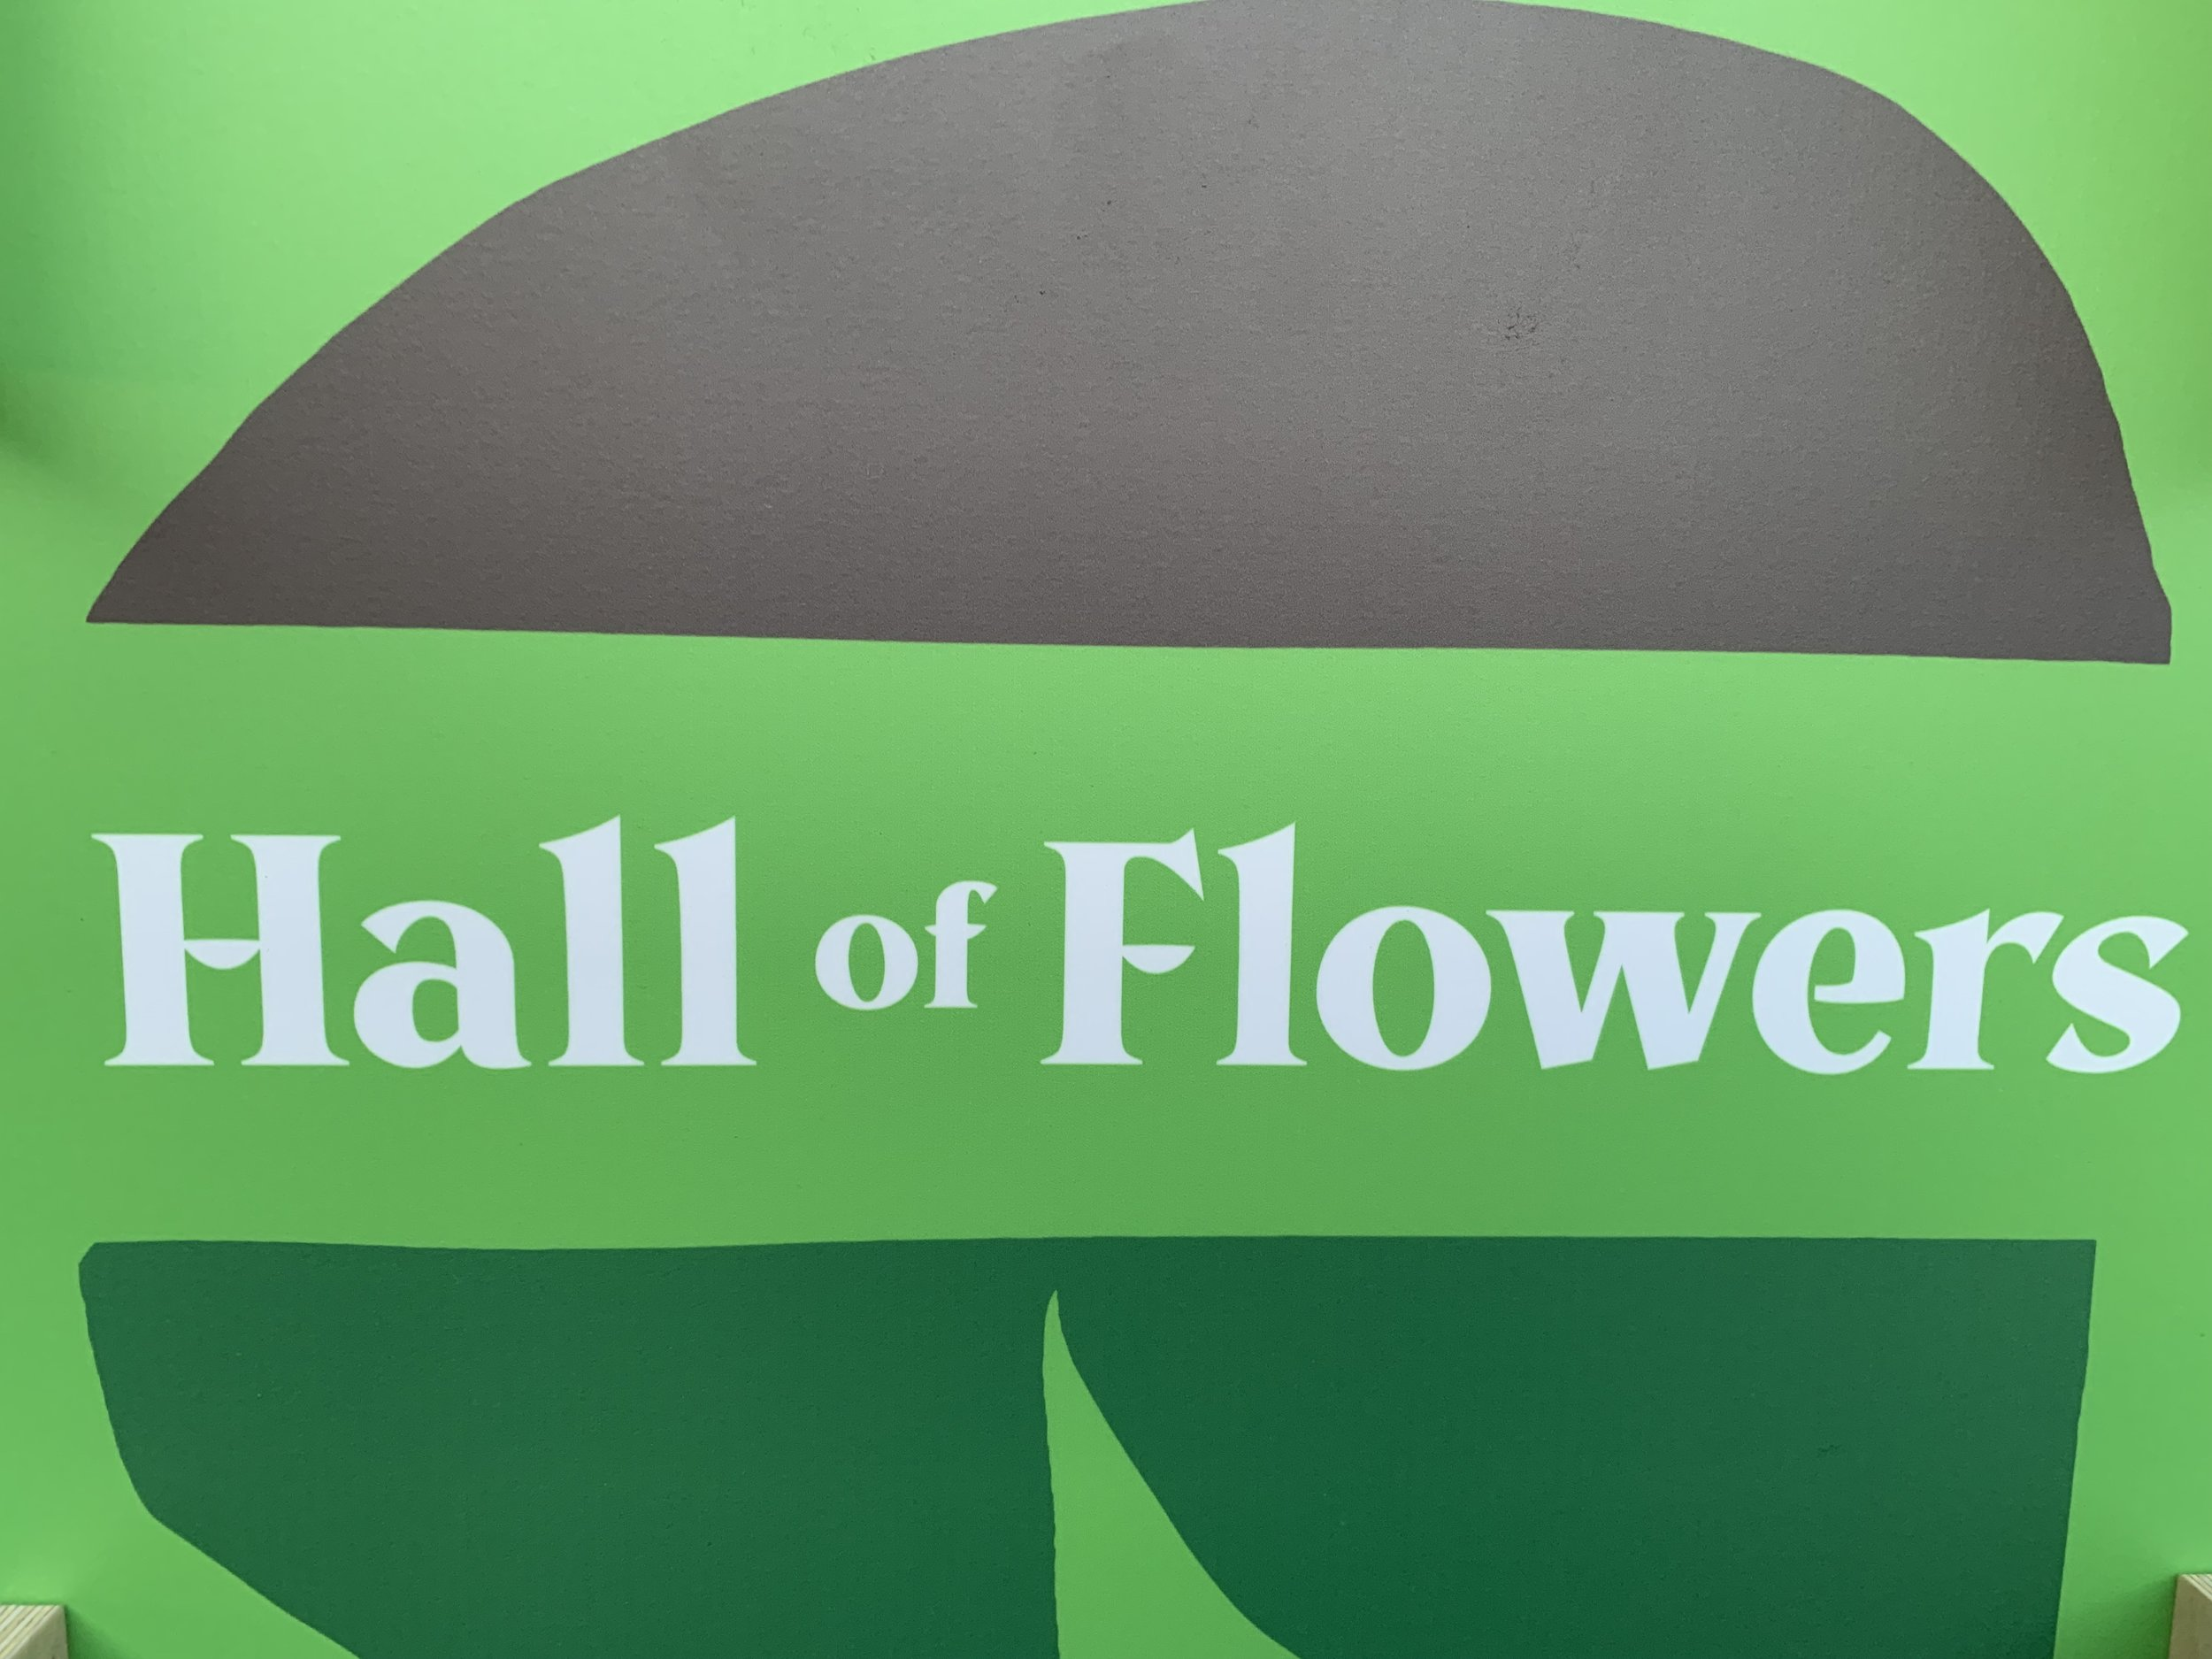 hall of flowers.jpg